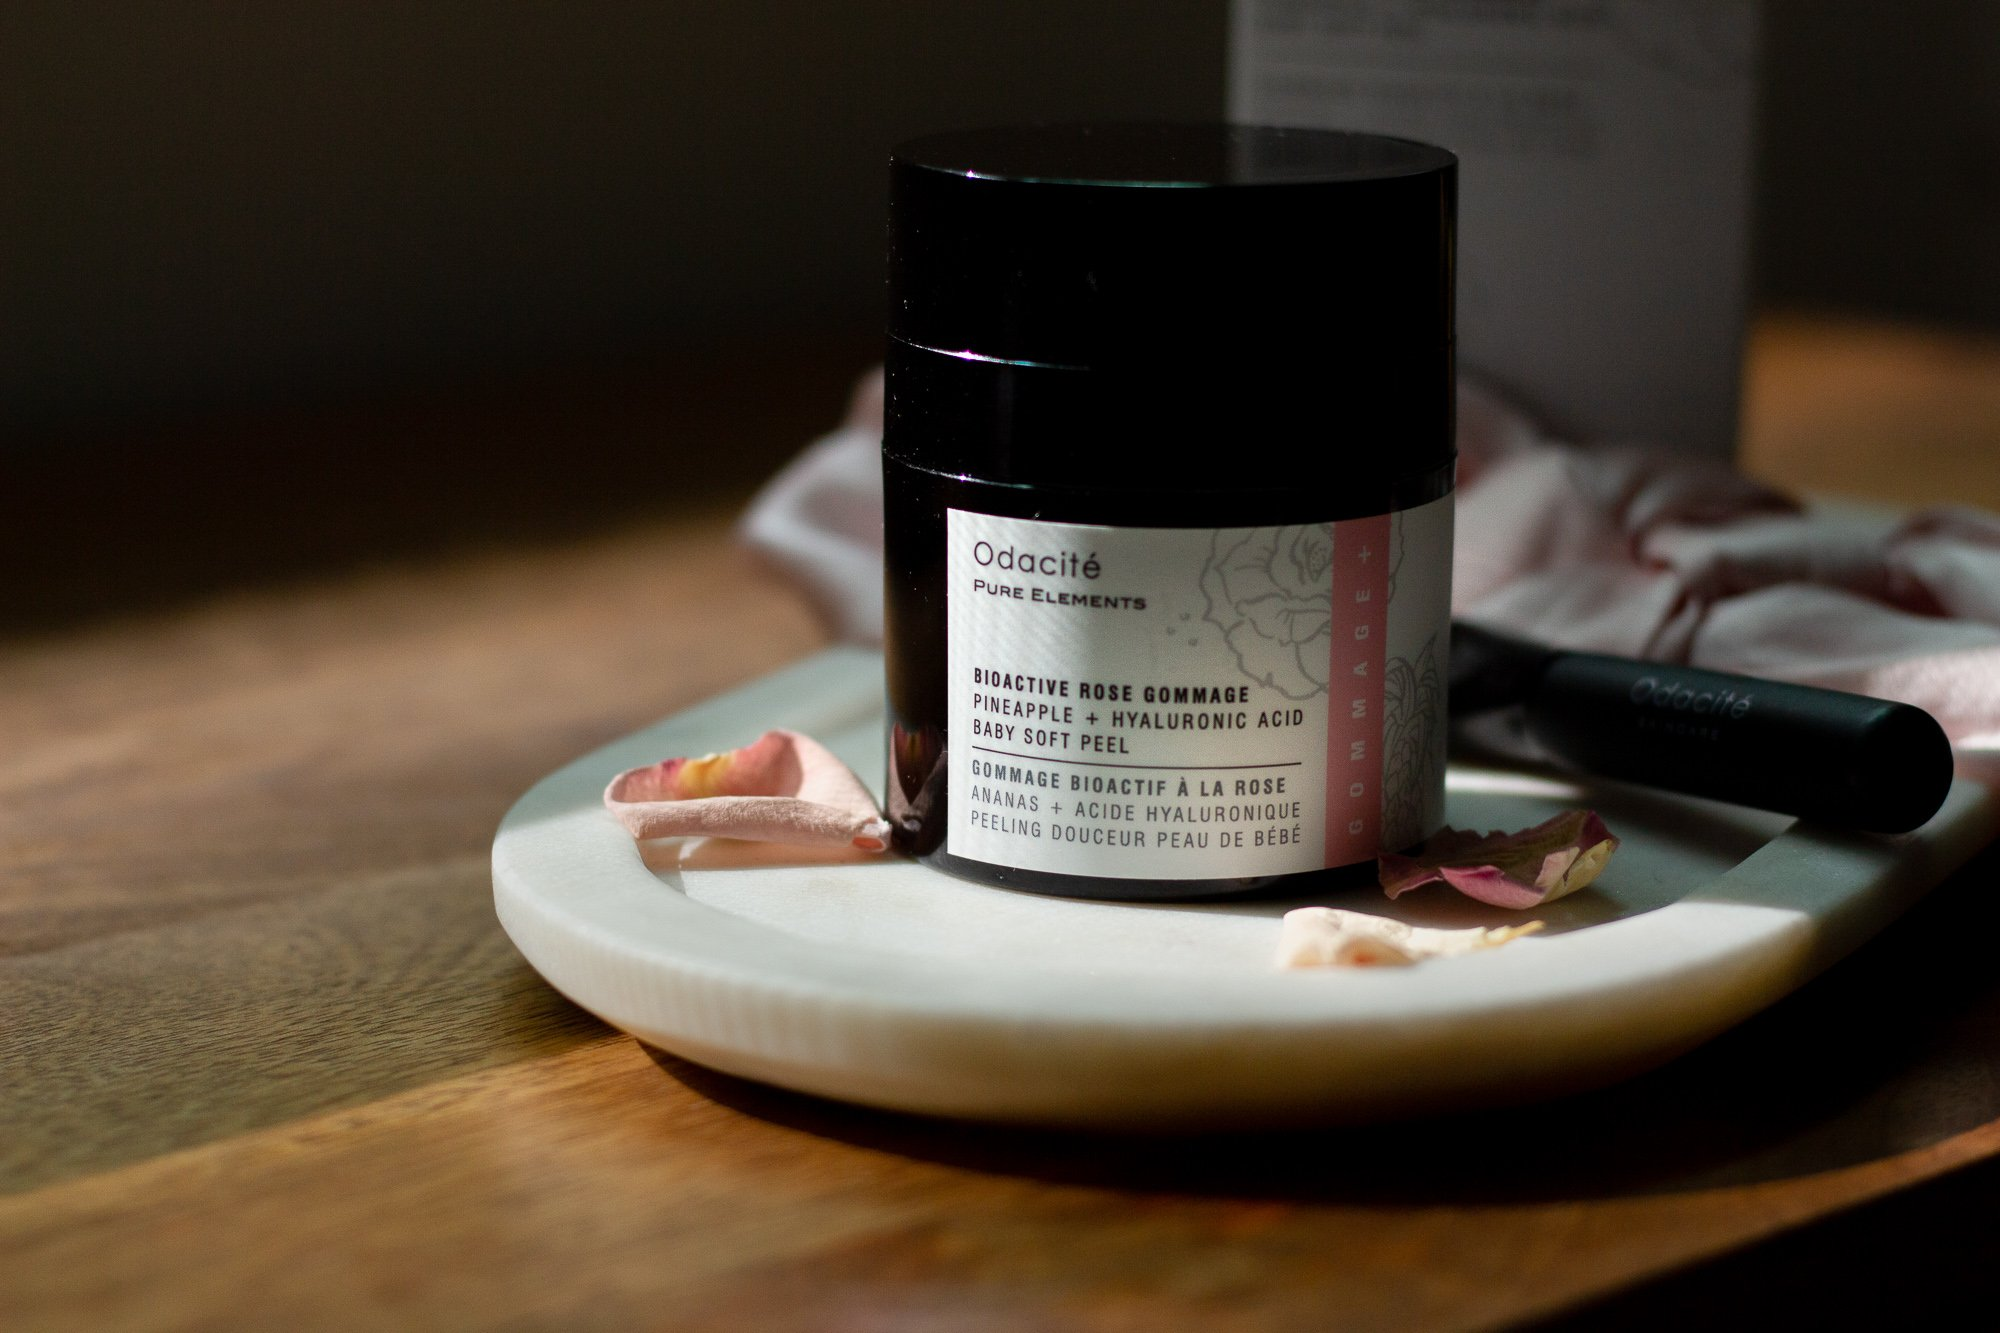 Odacite Bioactive Rose Gommage black jar on marble tray on wooden counter